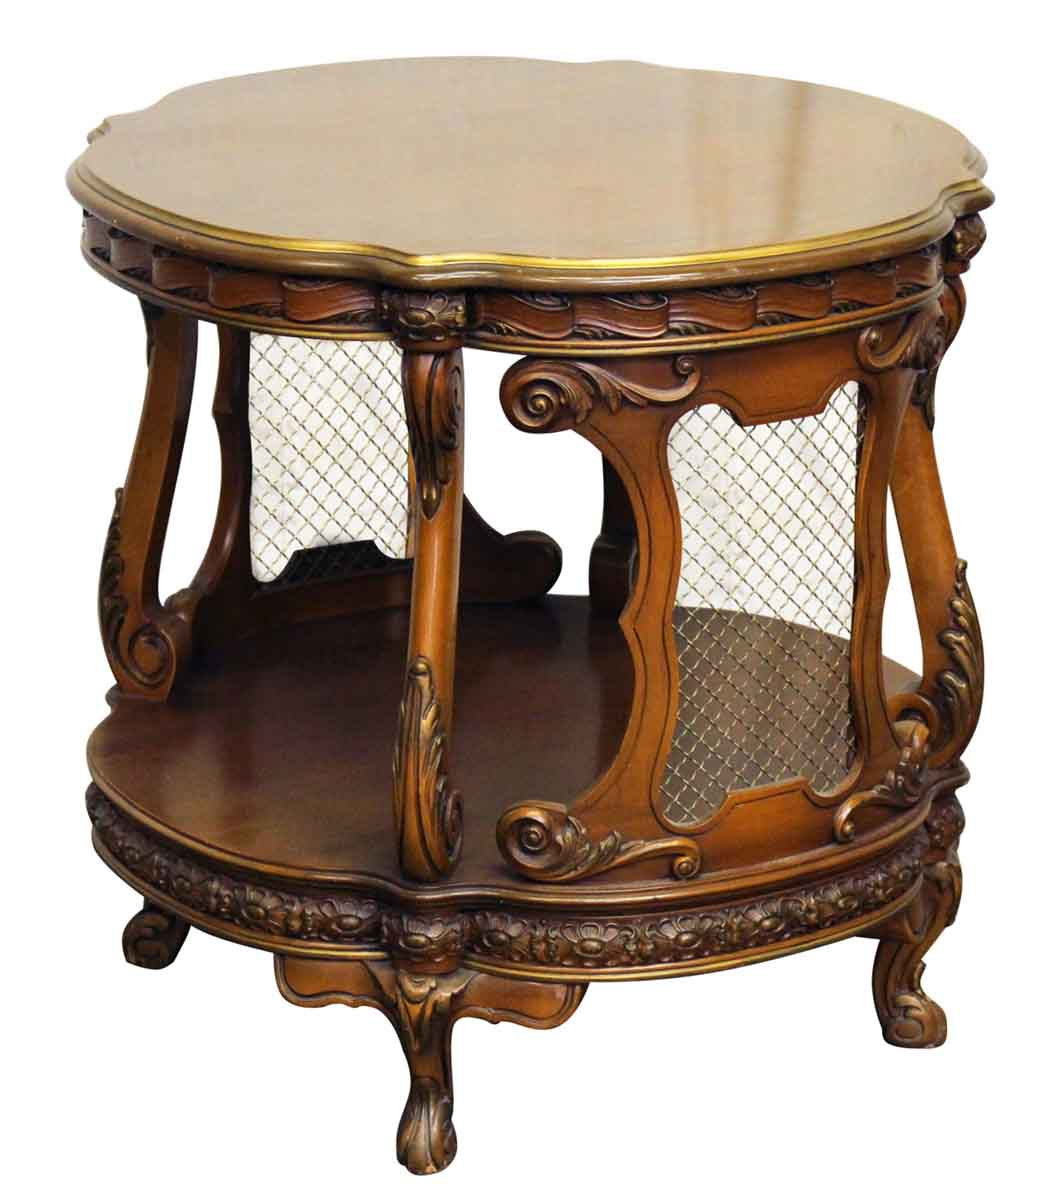 French carved side table with metal grids olde good things - Antique side tables for living room ...